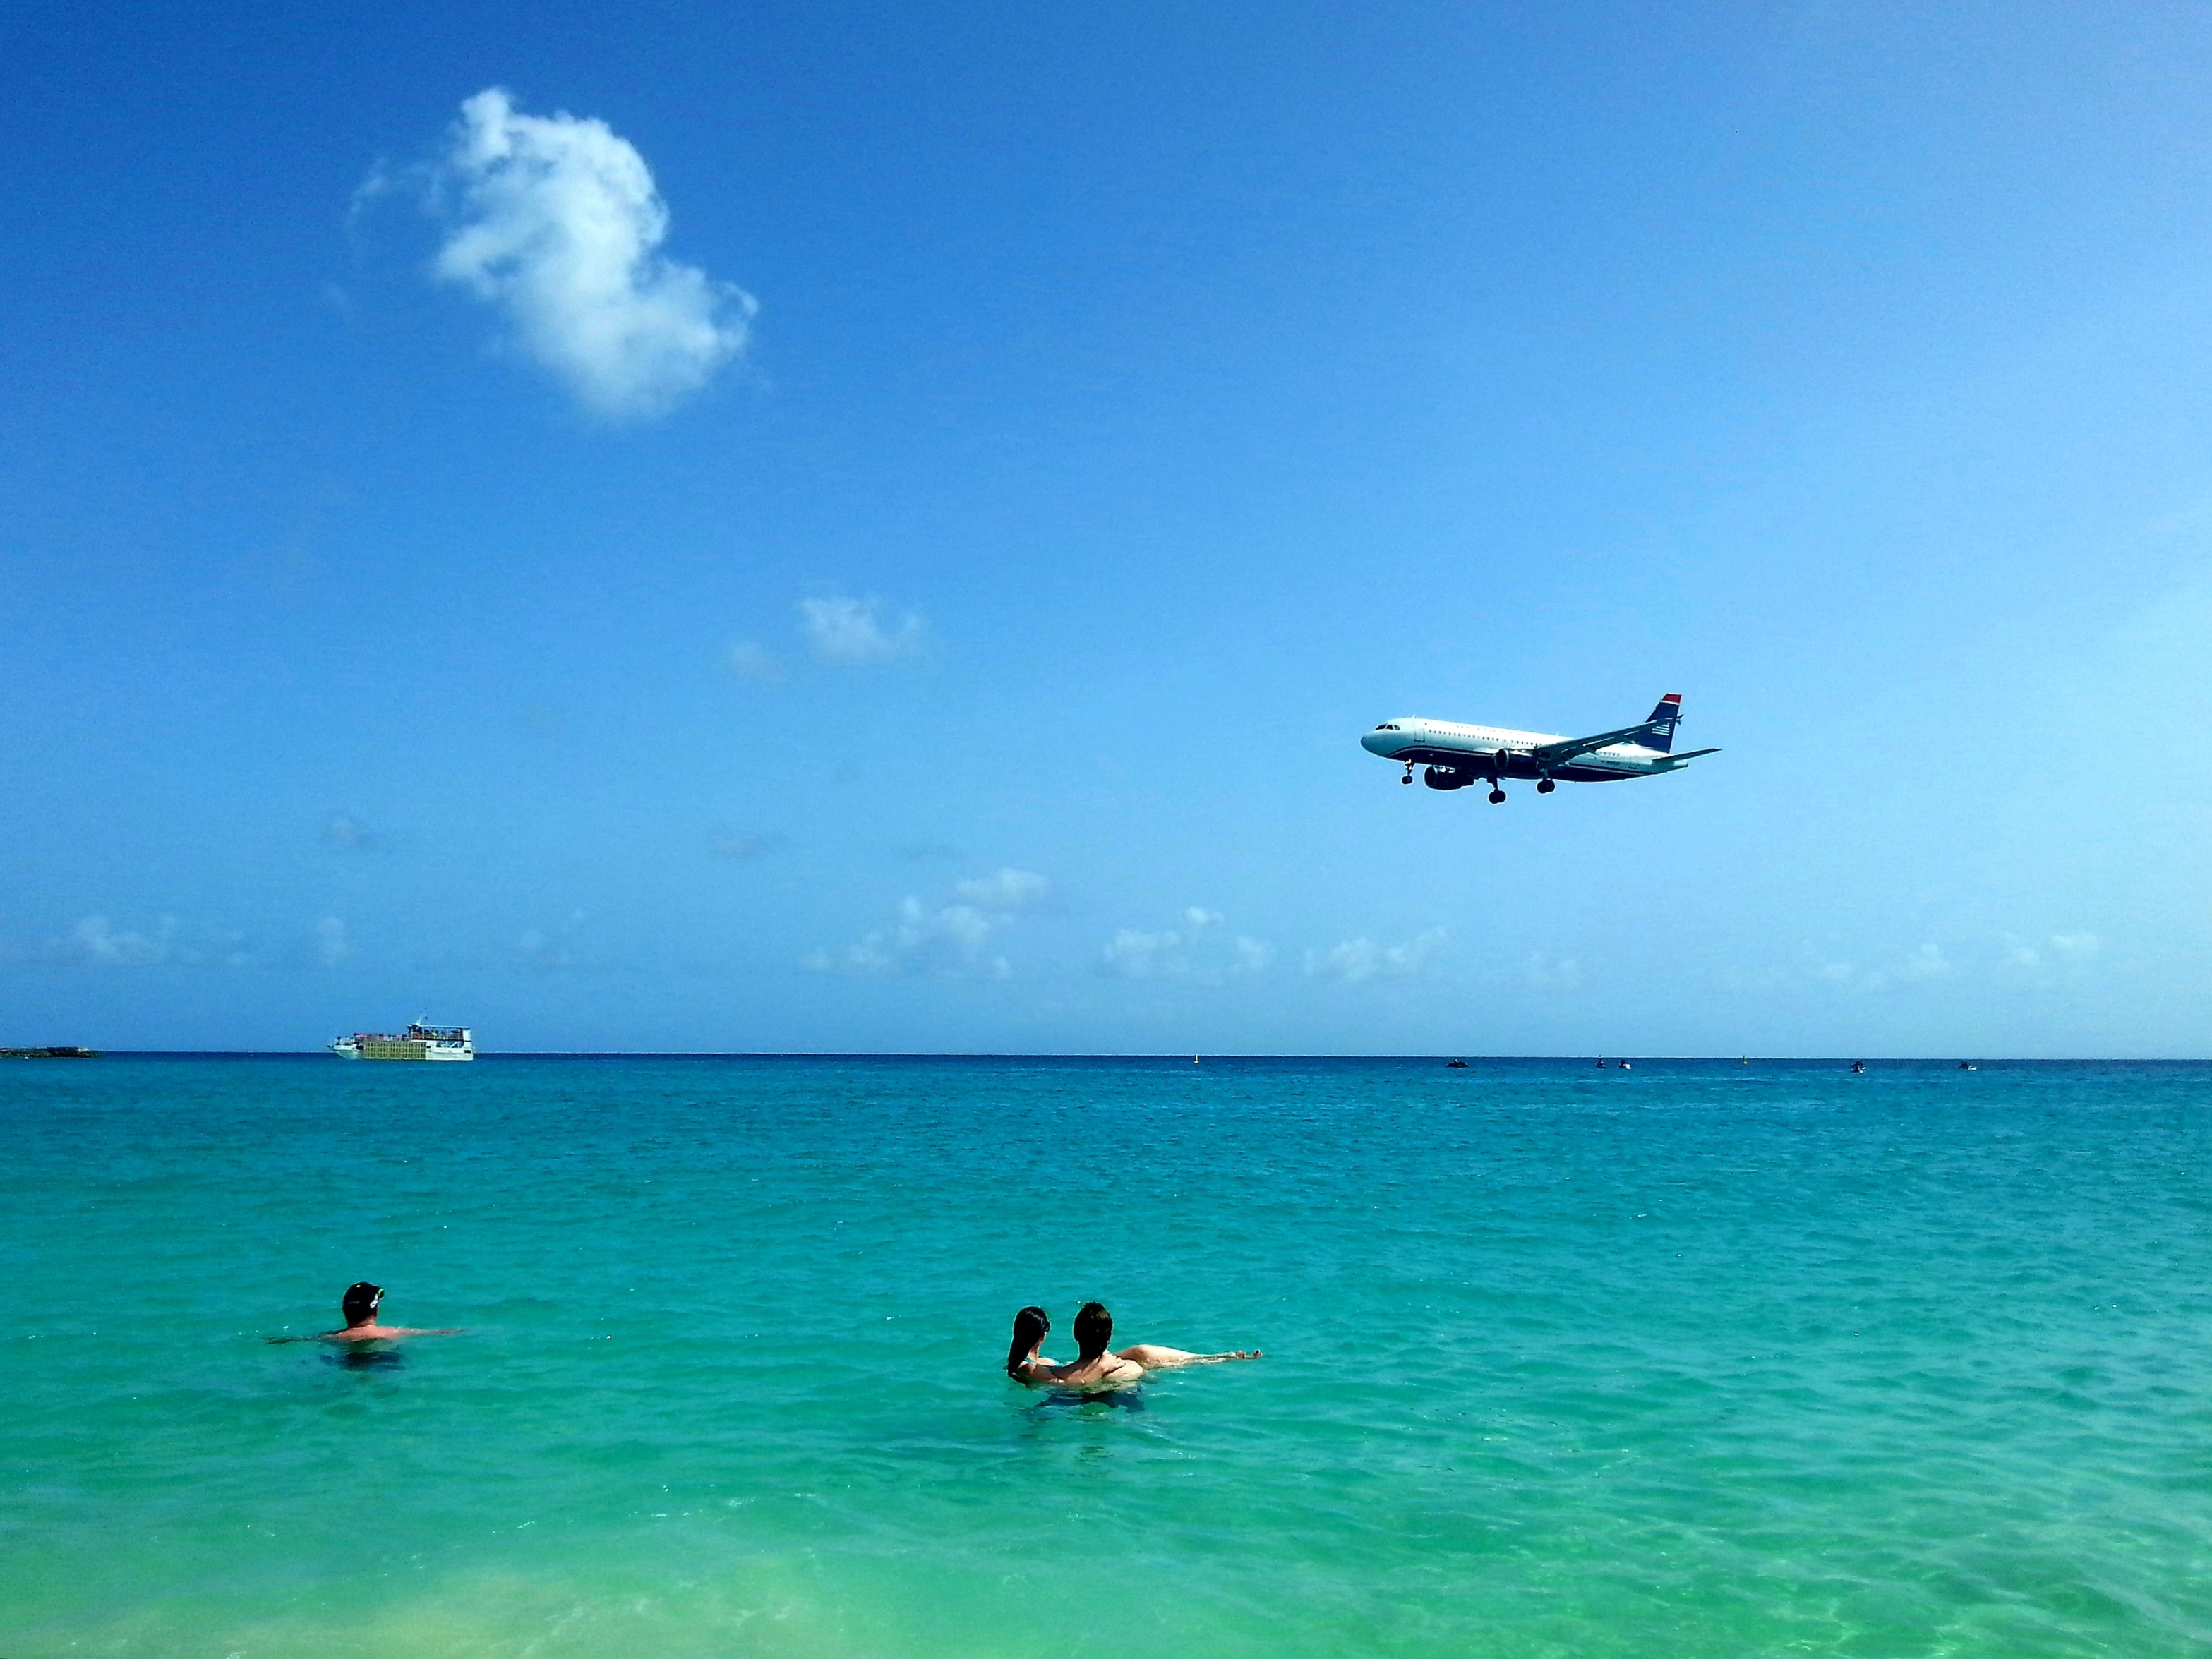 Australian Cricket Tours - Aircraft Landing At Princess Juliana International Airport Almost Touch Your Head As You Swim In The Tranquil Waters Of Maho Beach | St Maarten